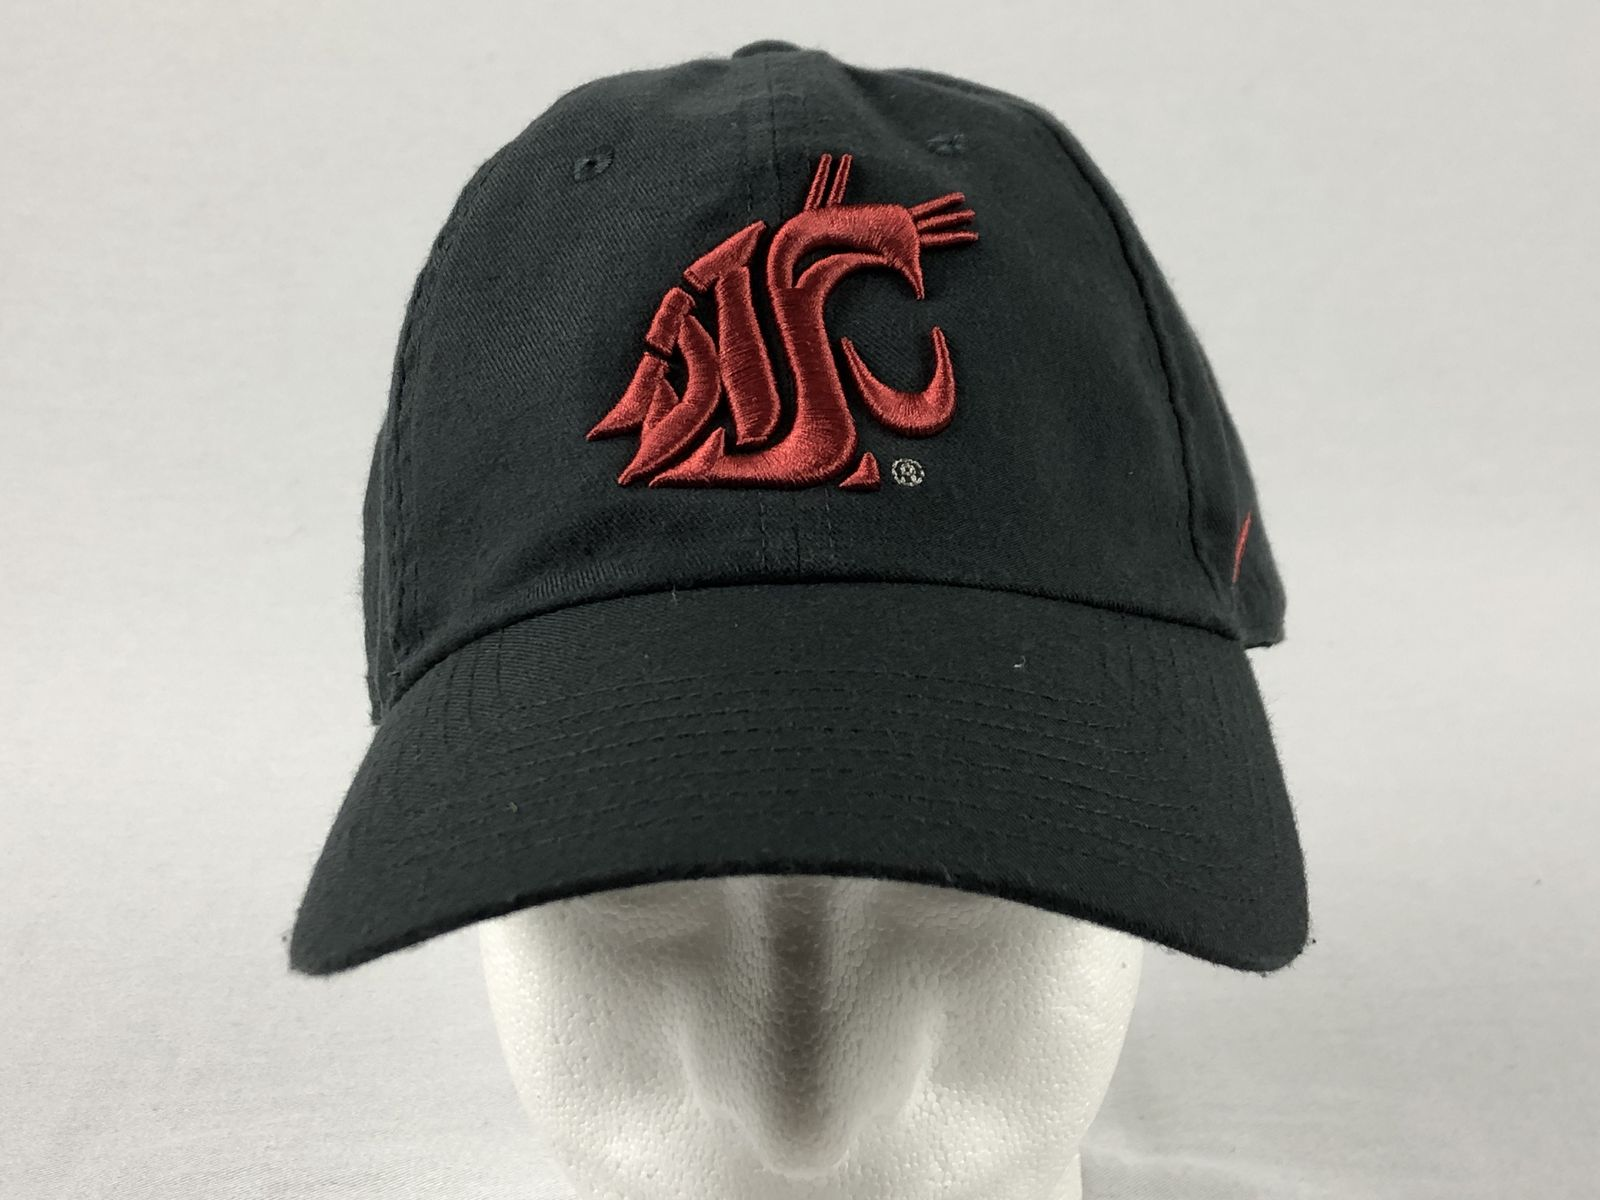 separation shoes 9d3b8 5cdae Details about Nike Washington State Cougars - Gray Adjustable Hat (OSFM) -  Used